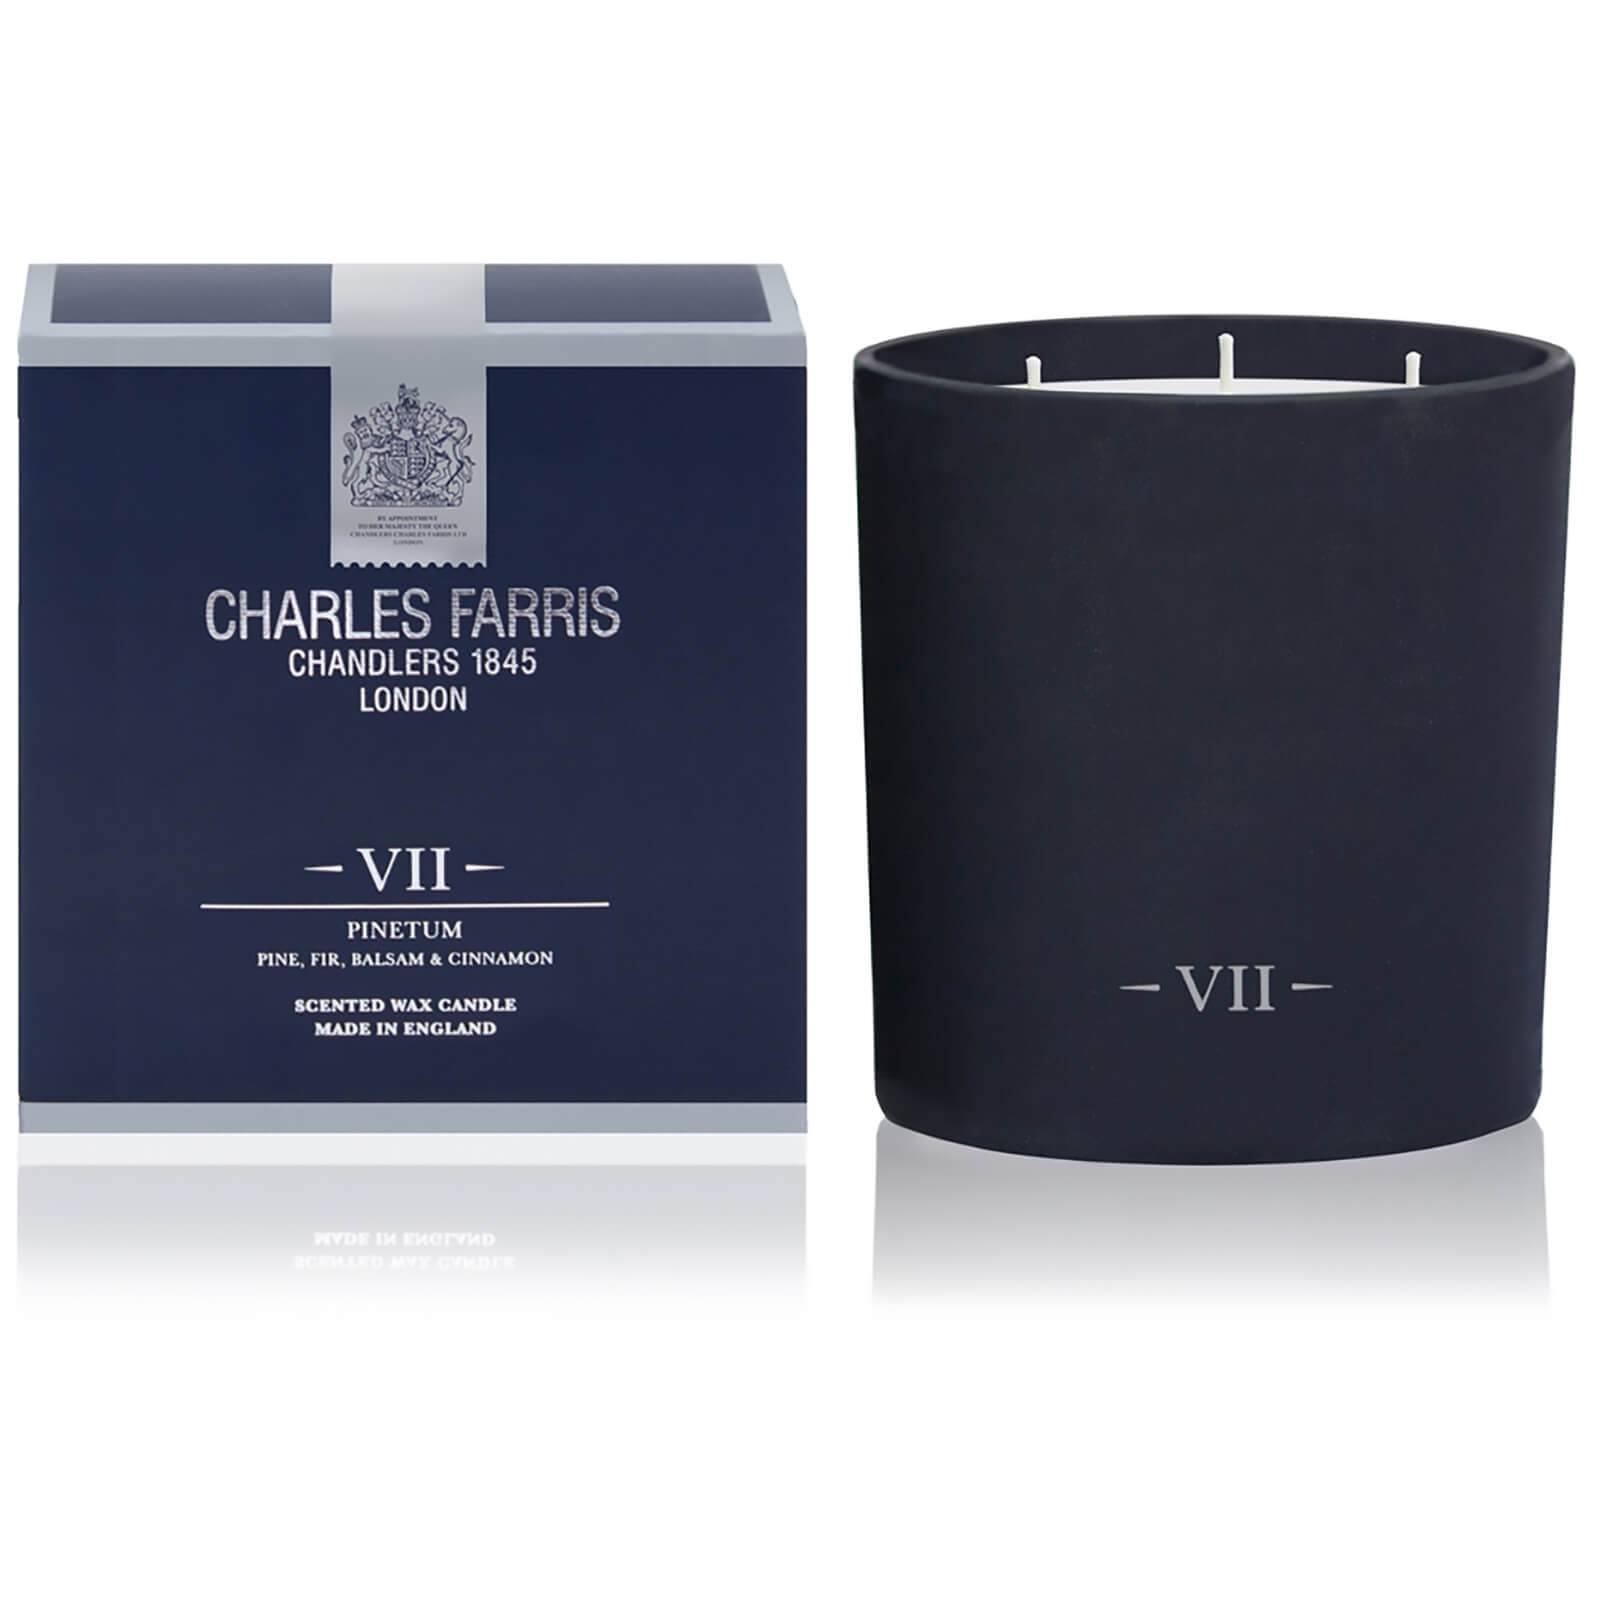 Charles Farris Signature Pinetum 3 Wick Candle 1475g